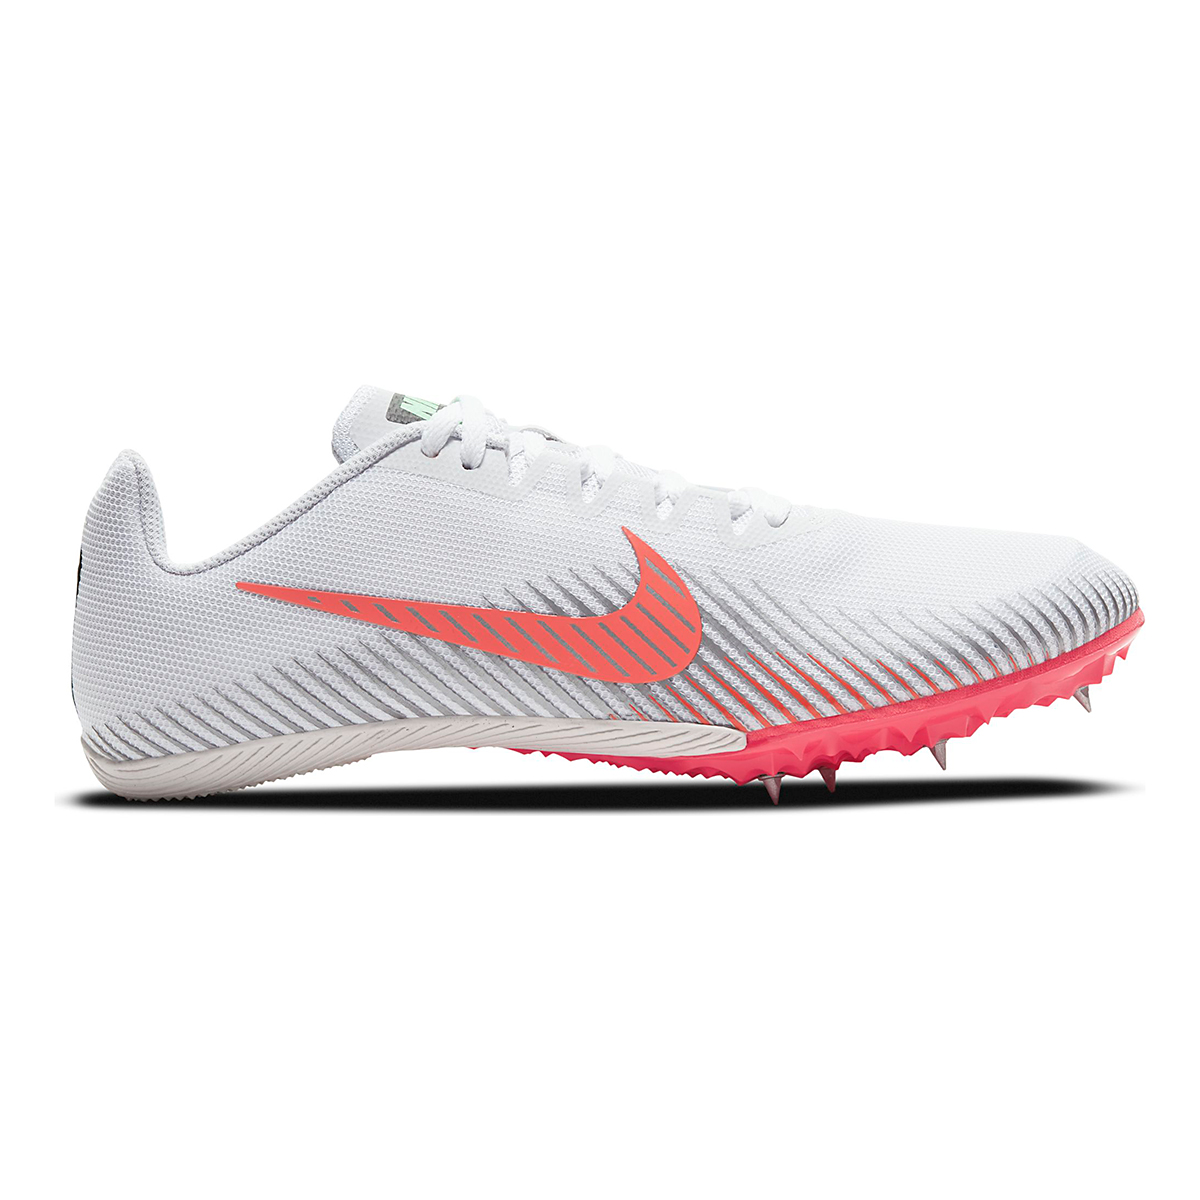 Nike Zoom Rival M 9 Track Spikes - Color: White/Flash Crimson/Hyper Jade/Black - Size: M4/W5.5 - Width: Regular, White/Flash Crimson/Hyper Jade/Black, large, image 1